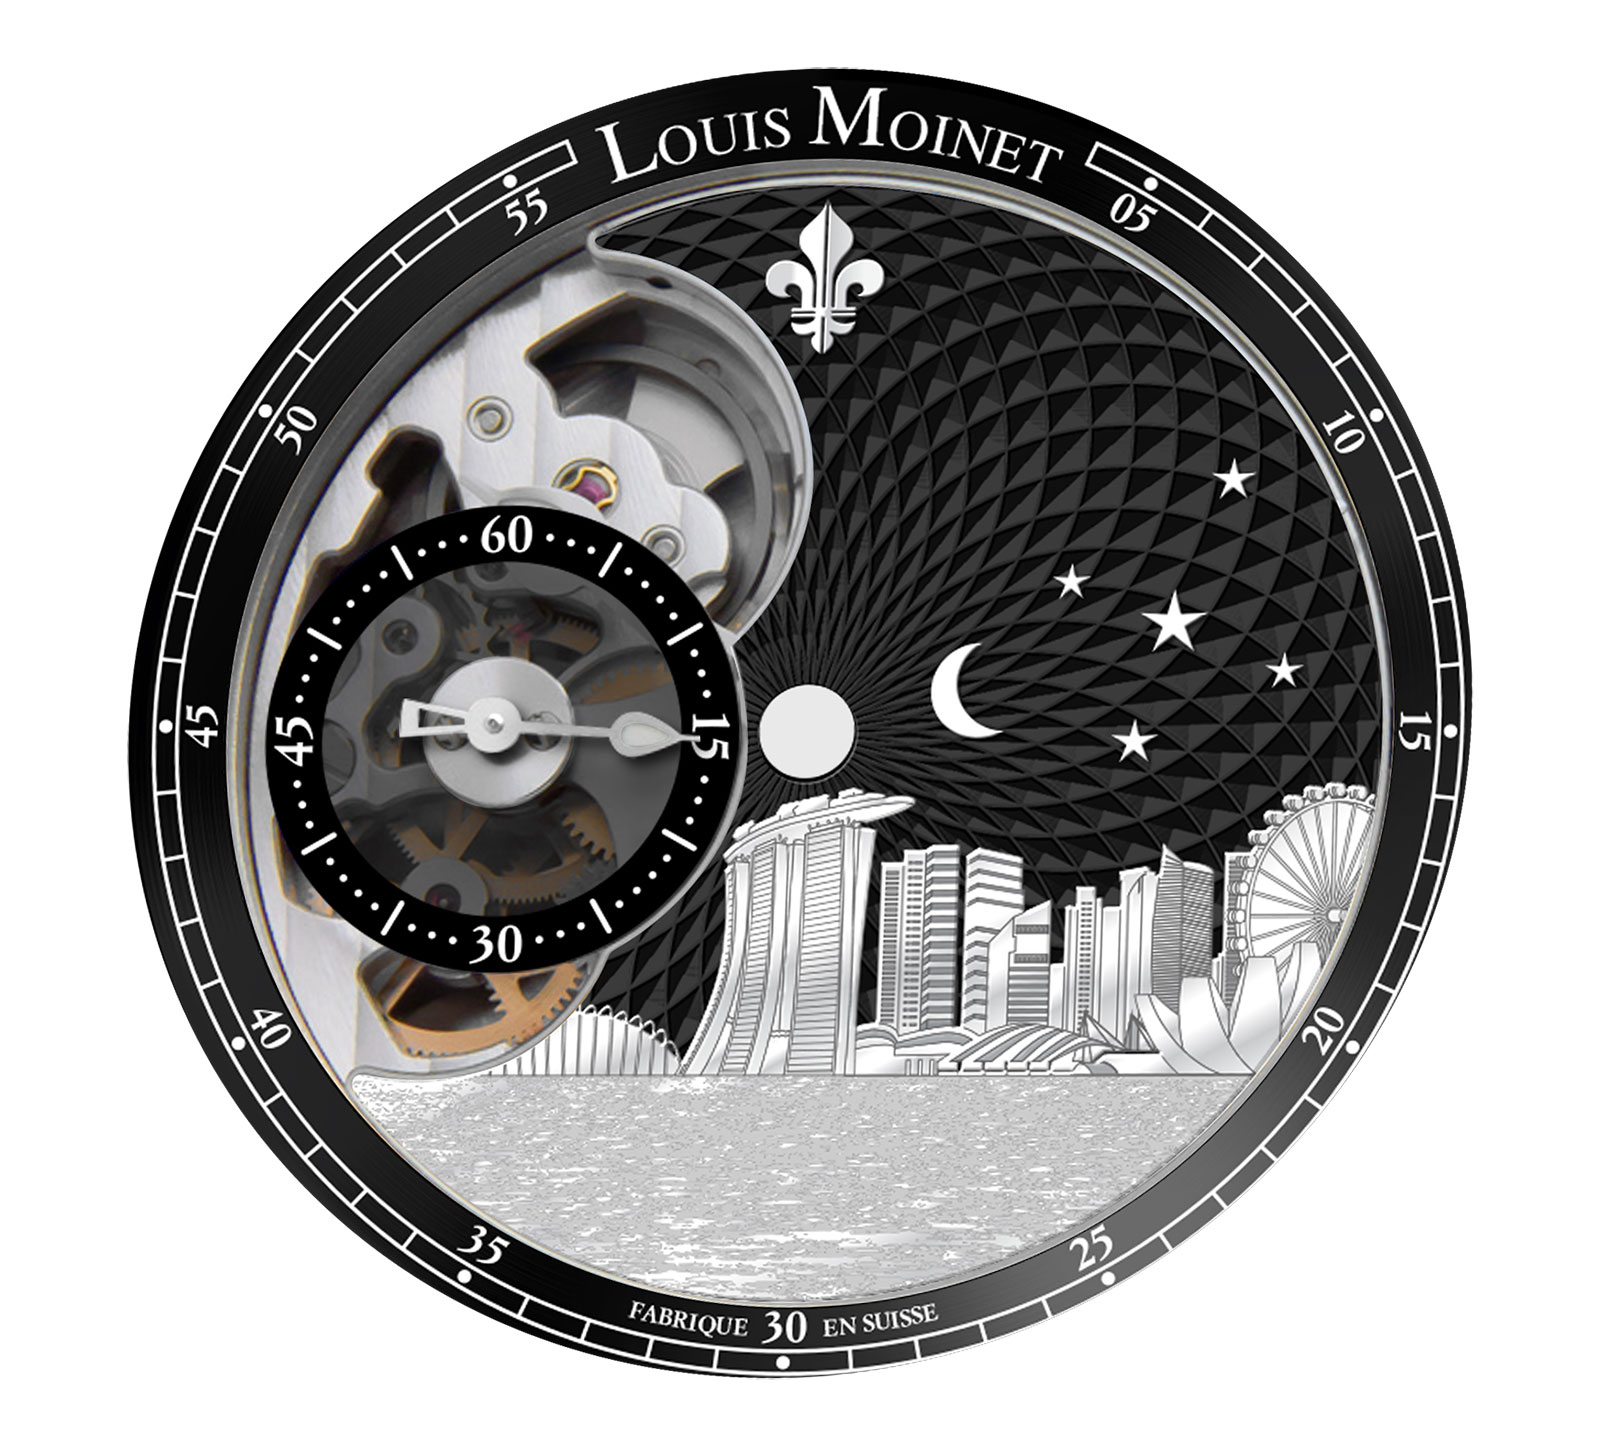 Louis Moinet Singapore Edition watch 3